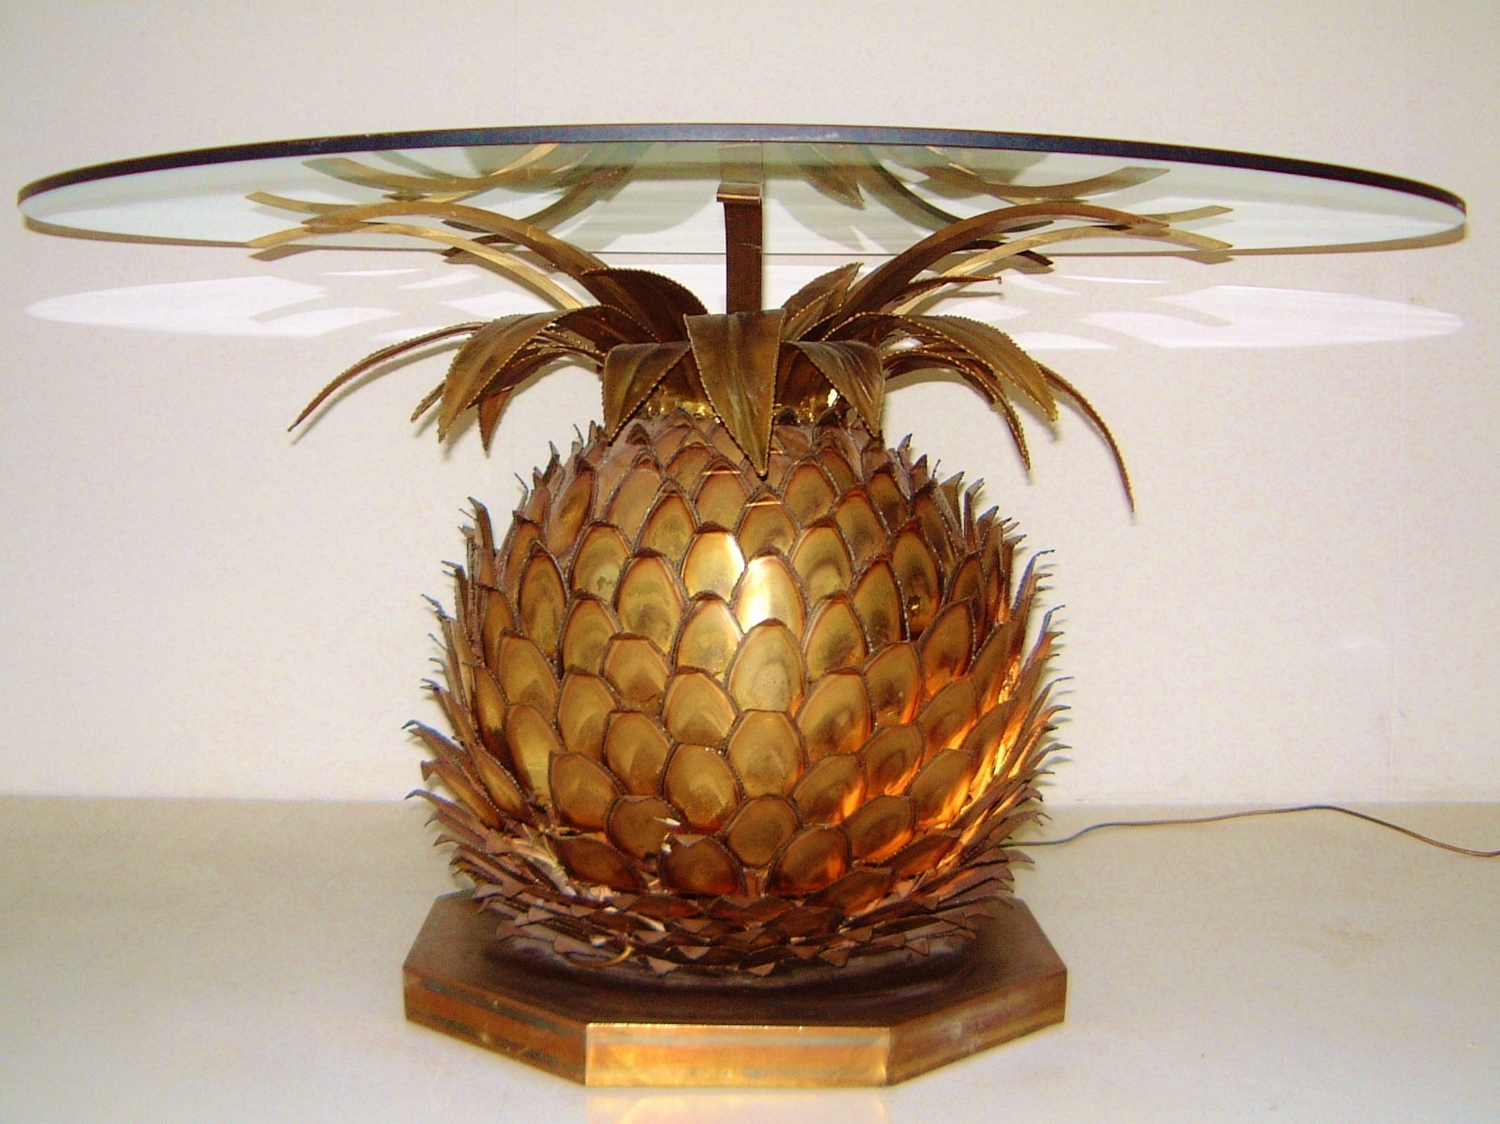 Delightful Extravagant Pineapple Lamp With Unique Design Light Pineapple Lamp For Home  Light Furniture